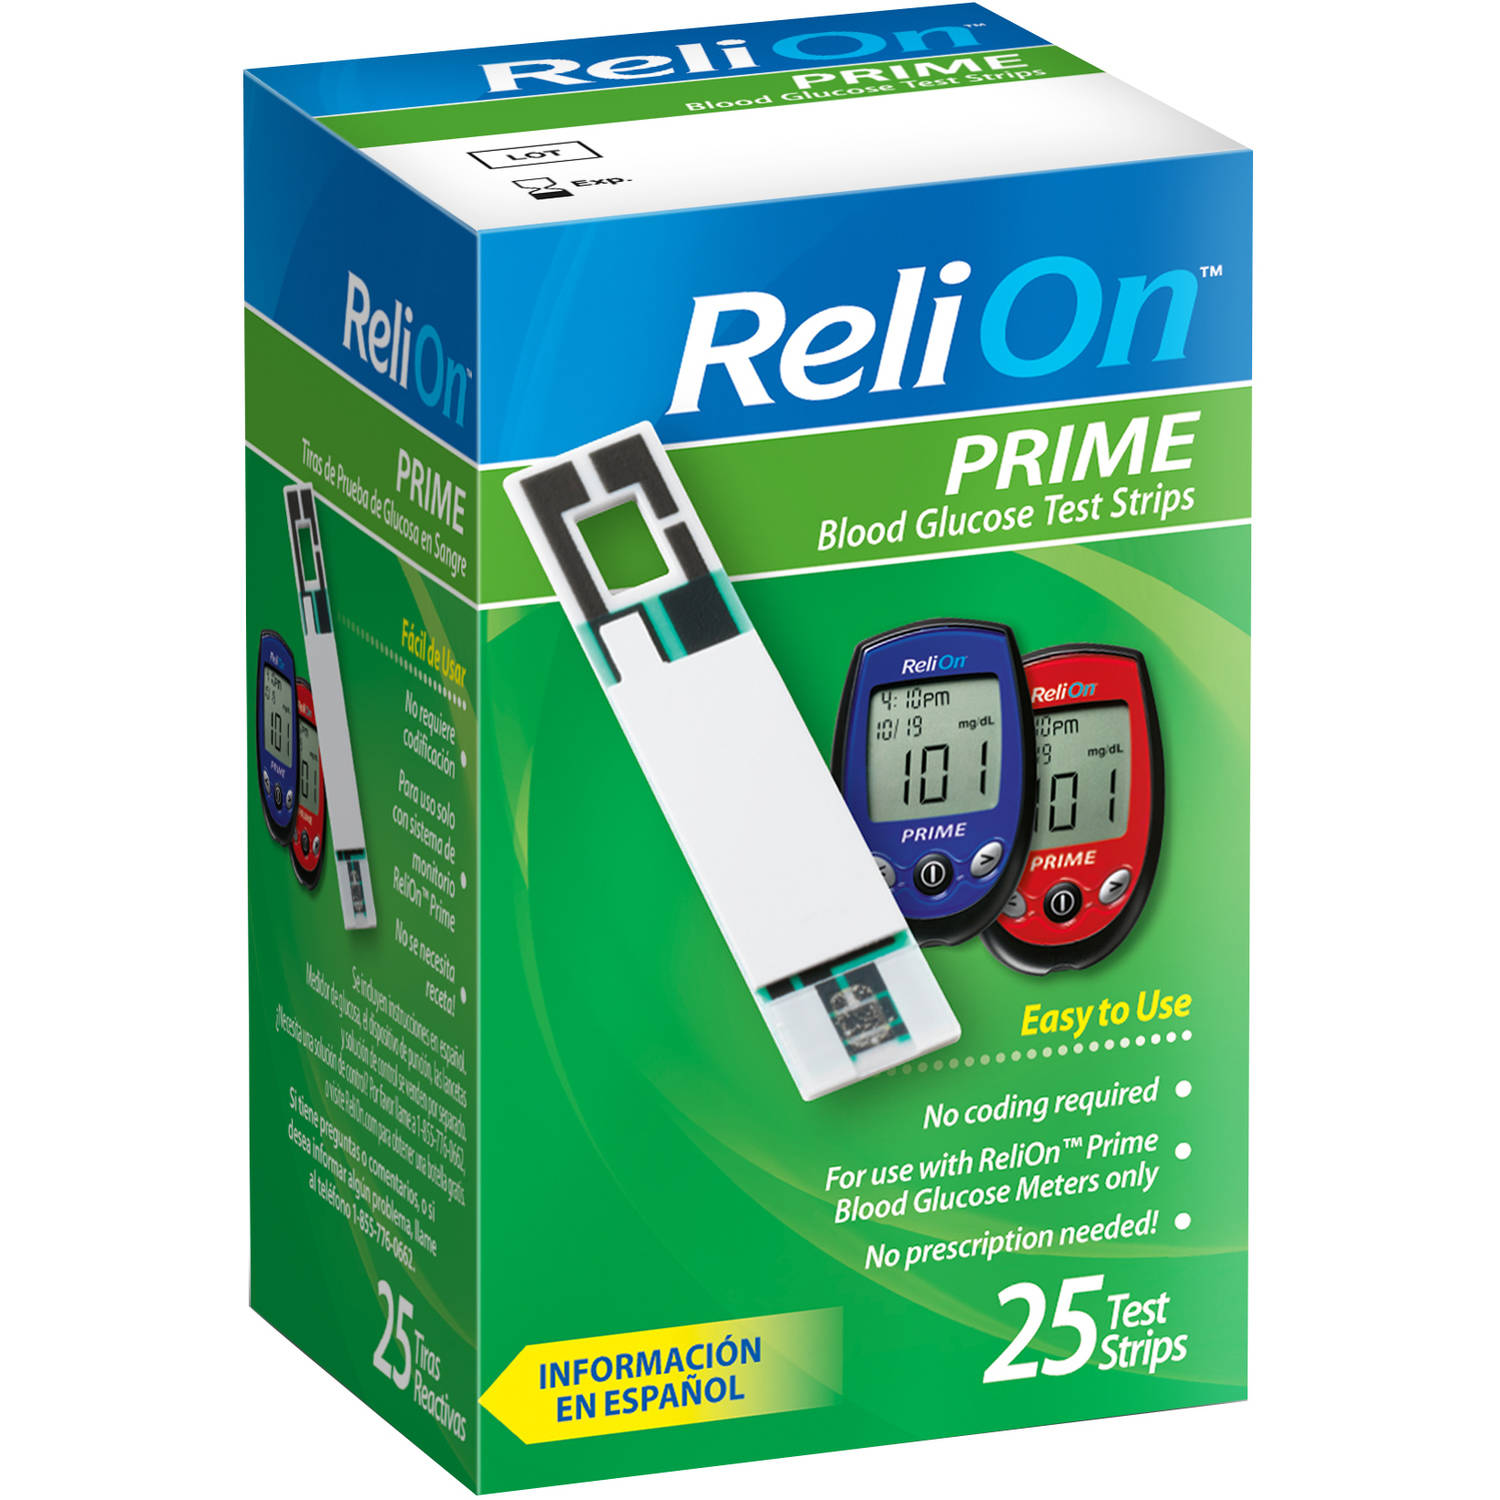 ReliOn Prime Blood Glucose Test Strips, 25 count